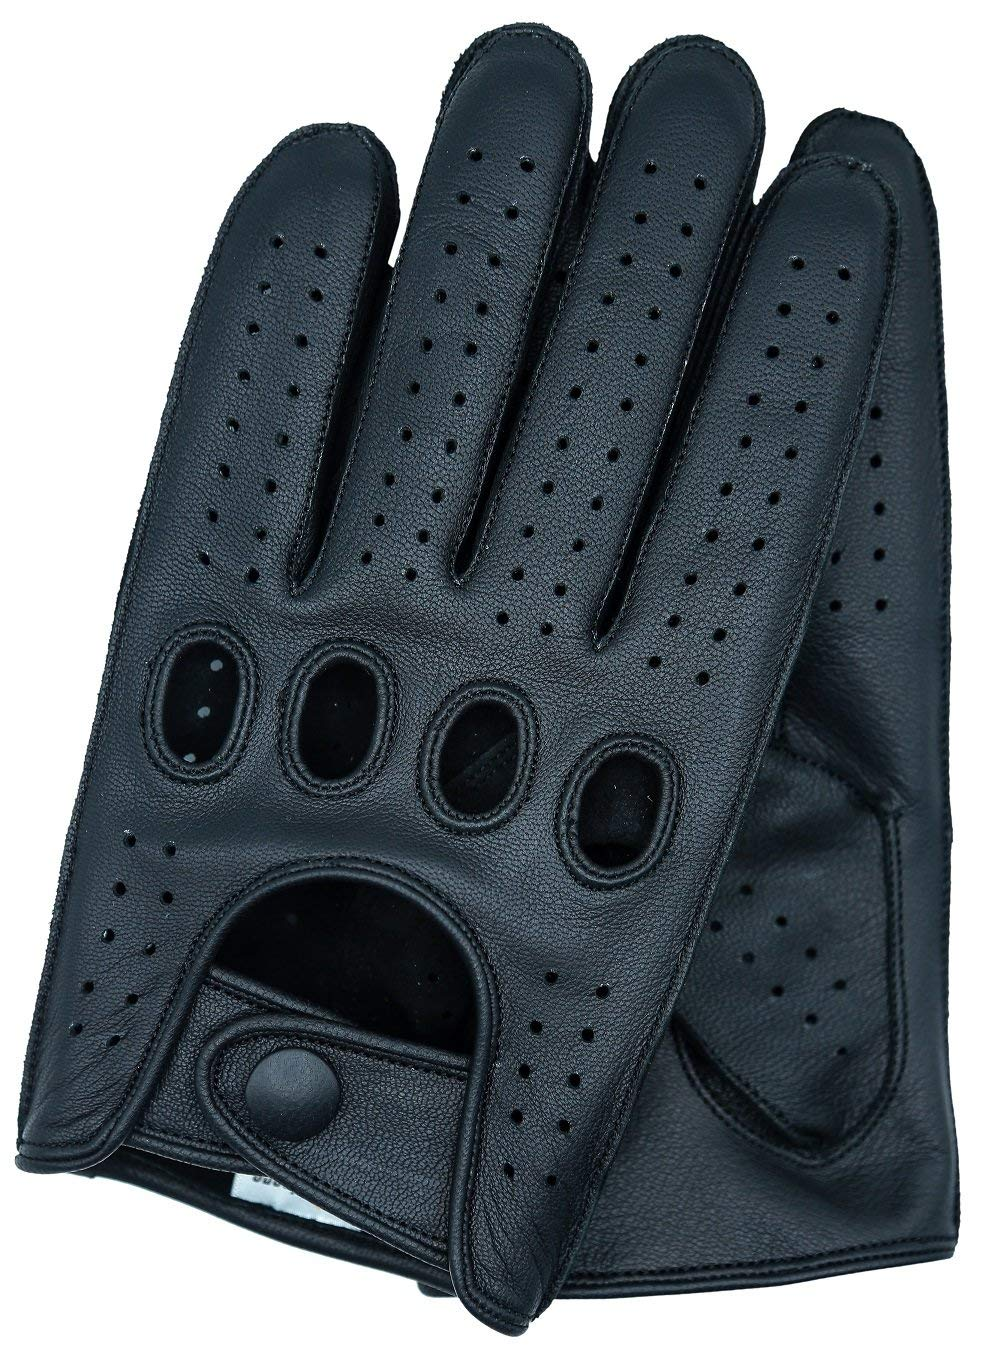 Black//Red, Small Men Genuine Leather Driving Texting Touch Screen Unlined Knuckle Holes Gloves